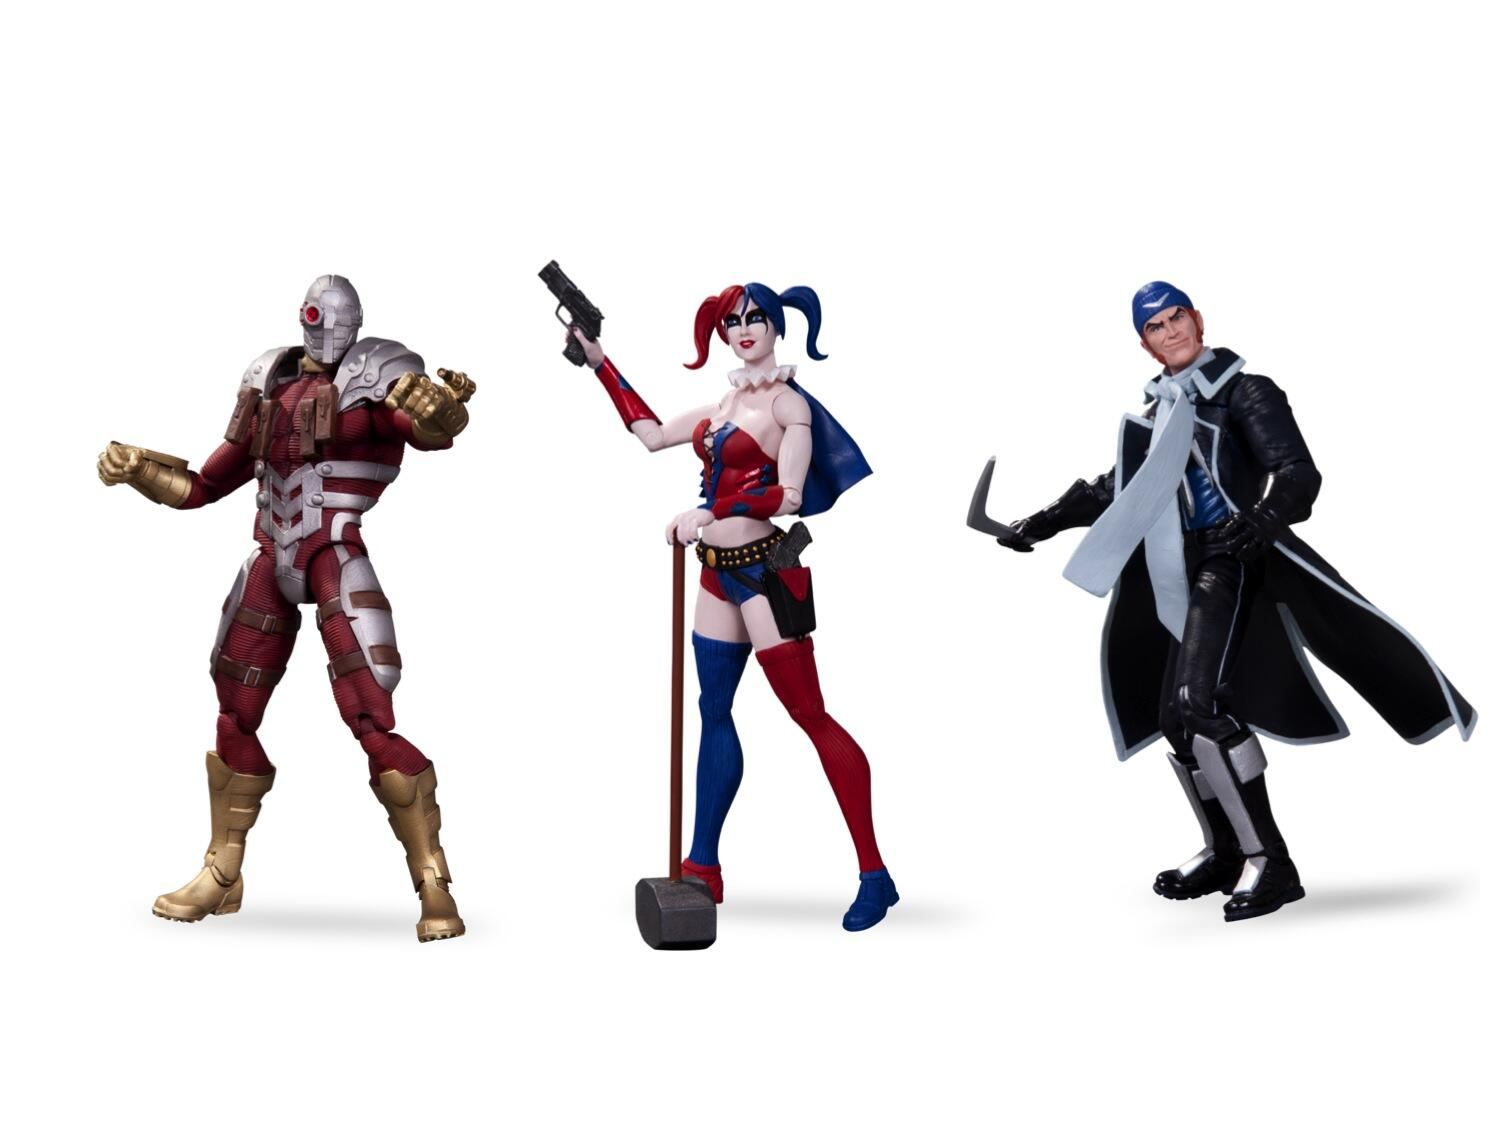 [DC Collectibles][Tópico Oficial] DC Comics: The New 52 - Harley Quinn, Green Lantern, Joker & Poison Ivy - Página 2 BWTk2bUCUAA-_CV